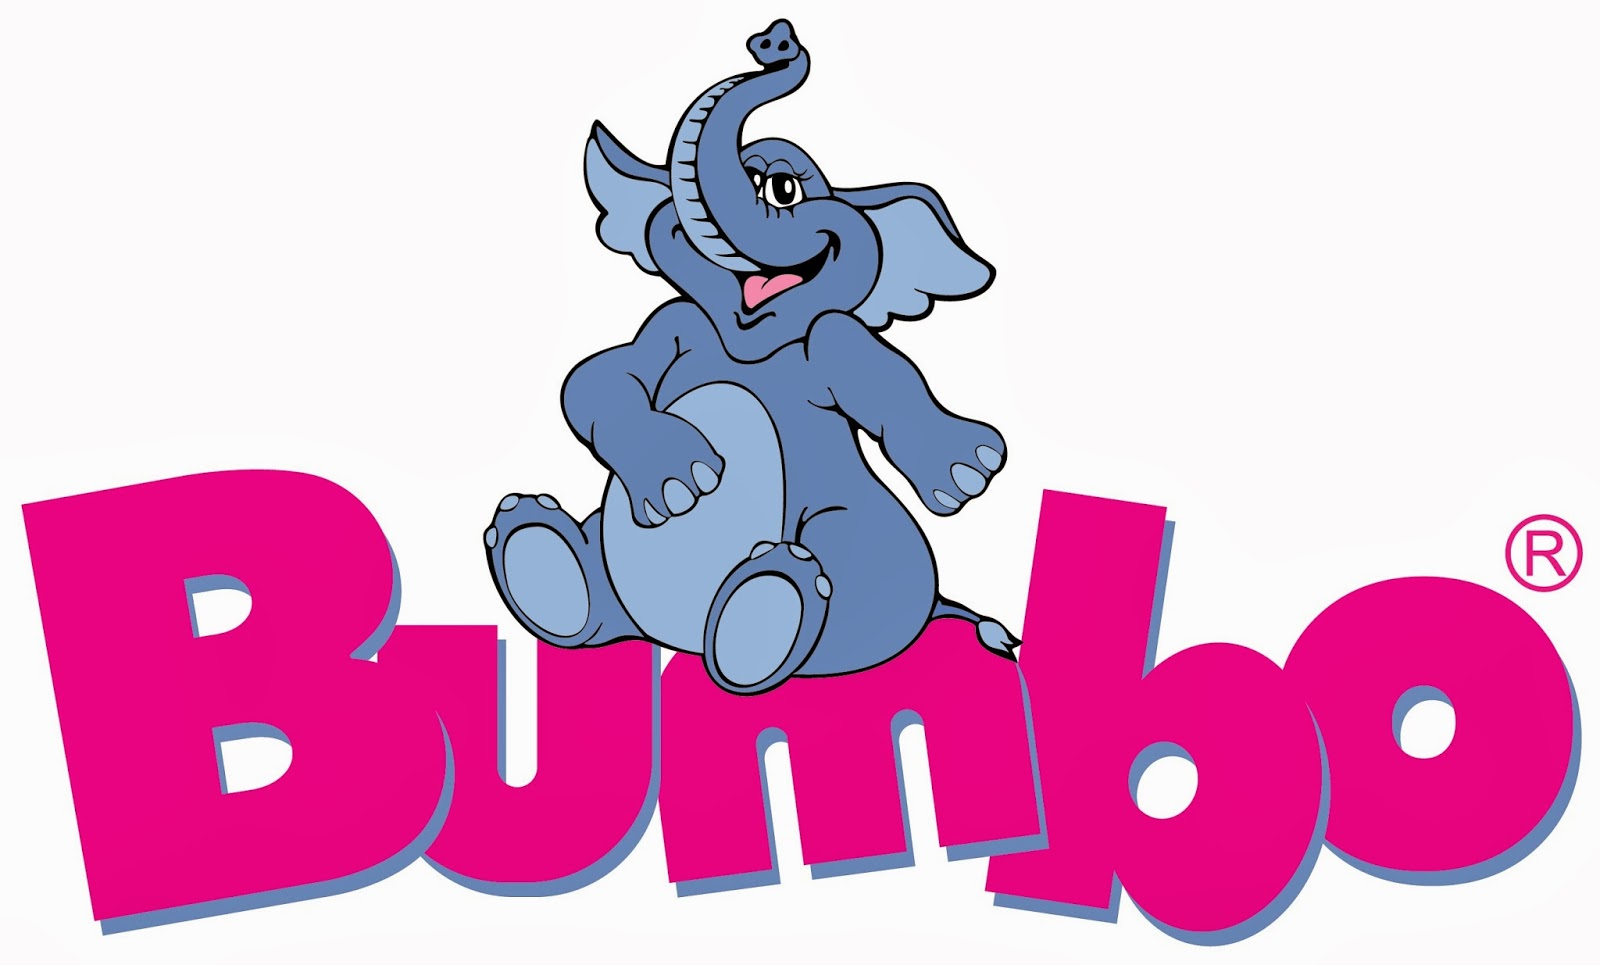 bumbo review and giveaway